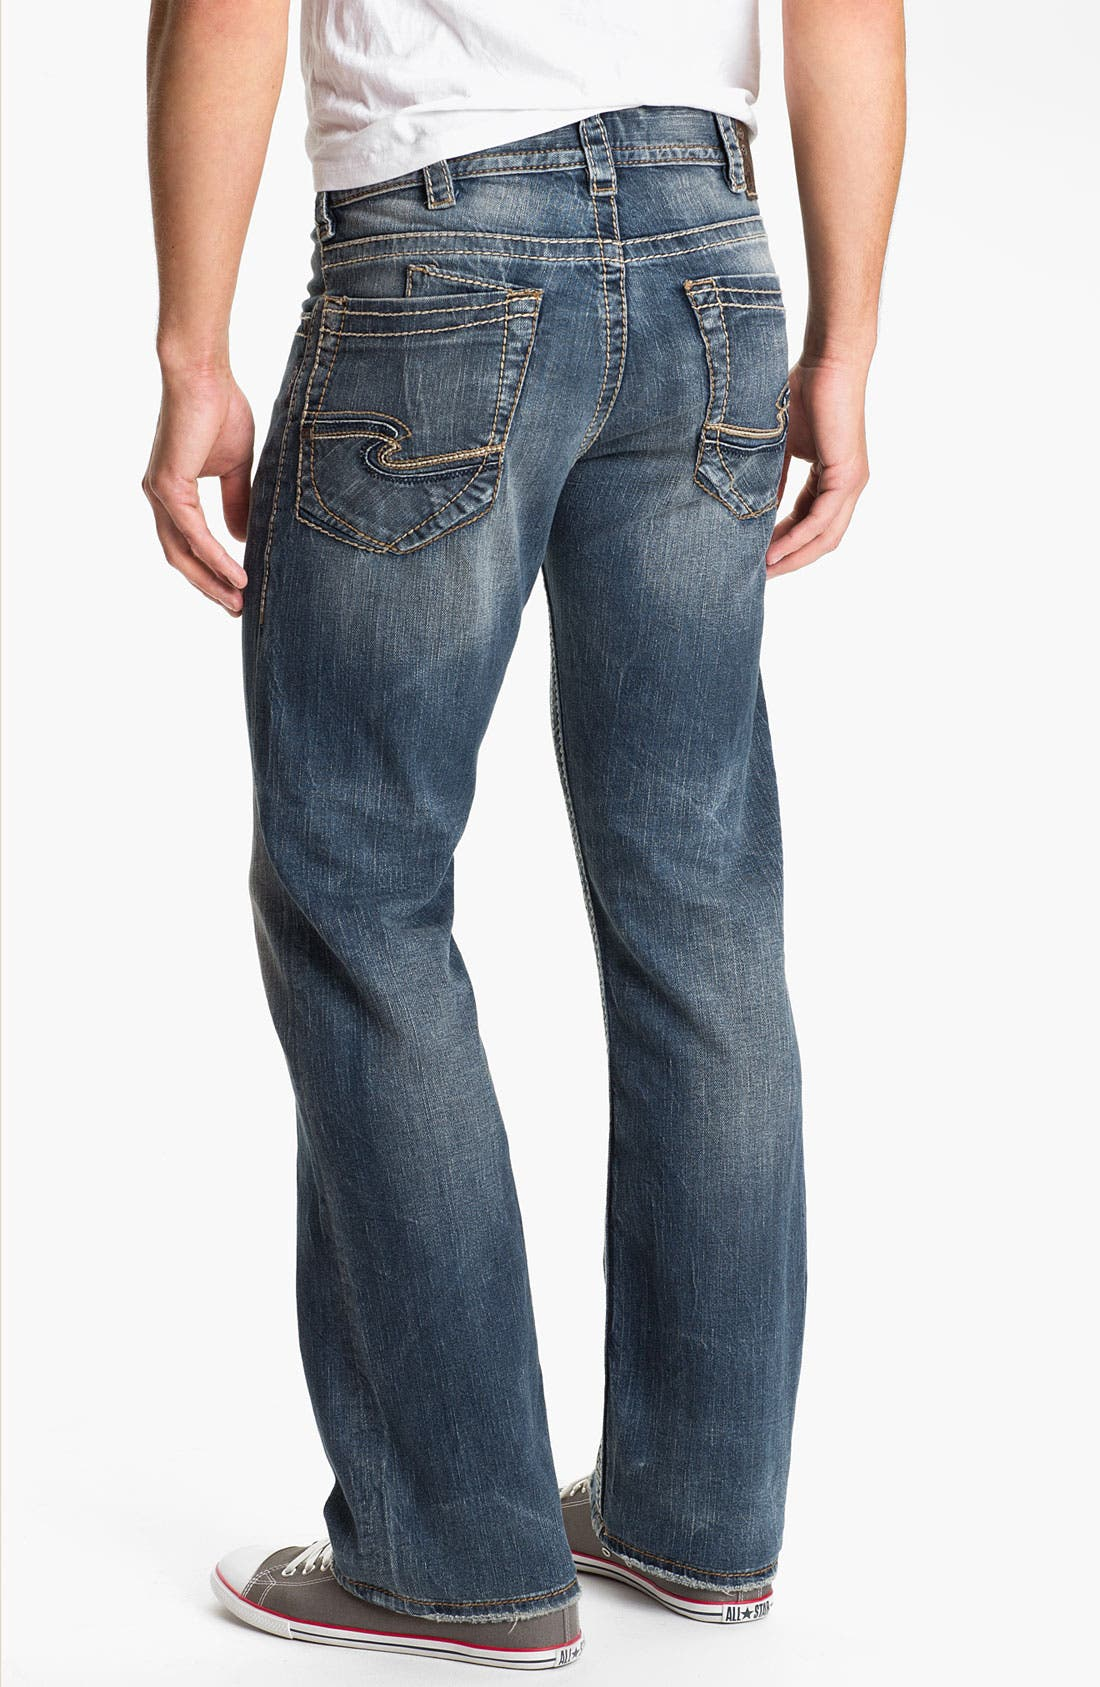 Alternate Image 1 Selected - Silver Jeans Co. 'Zac' Straight Leg Jeans (Indigo)